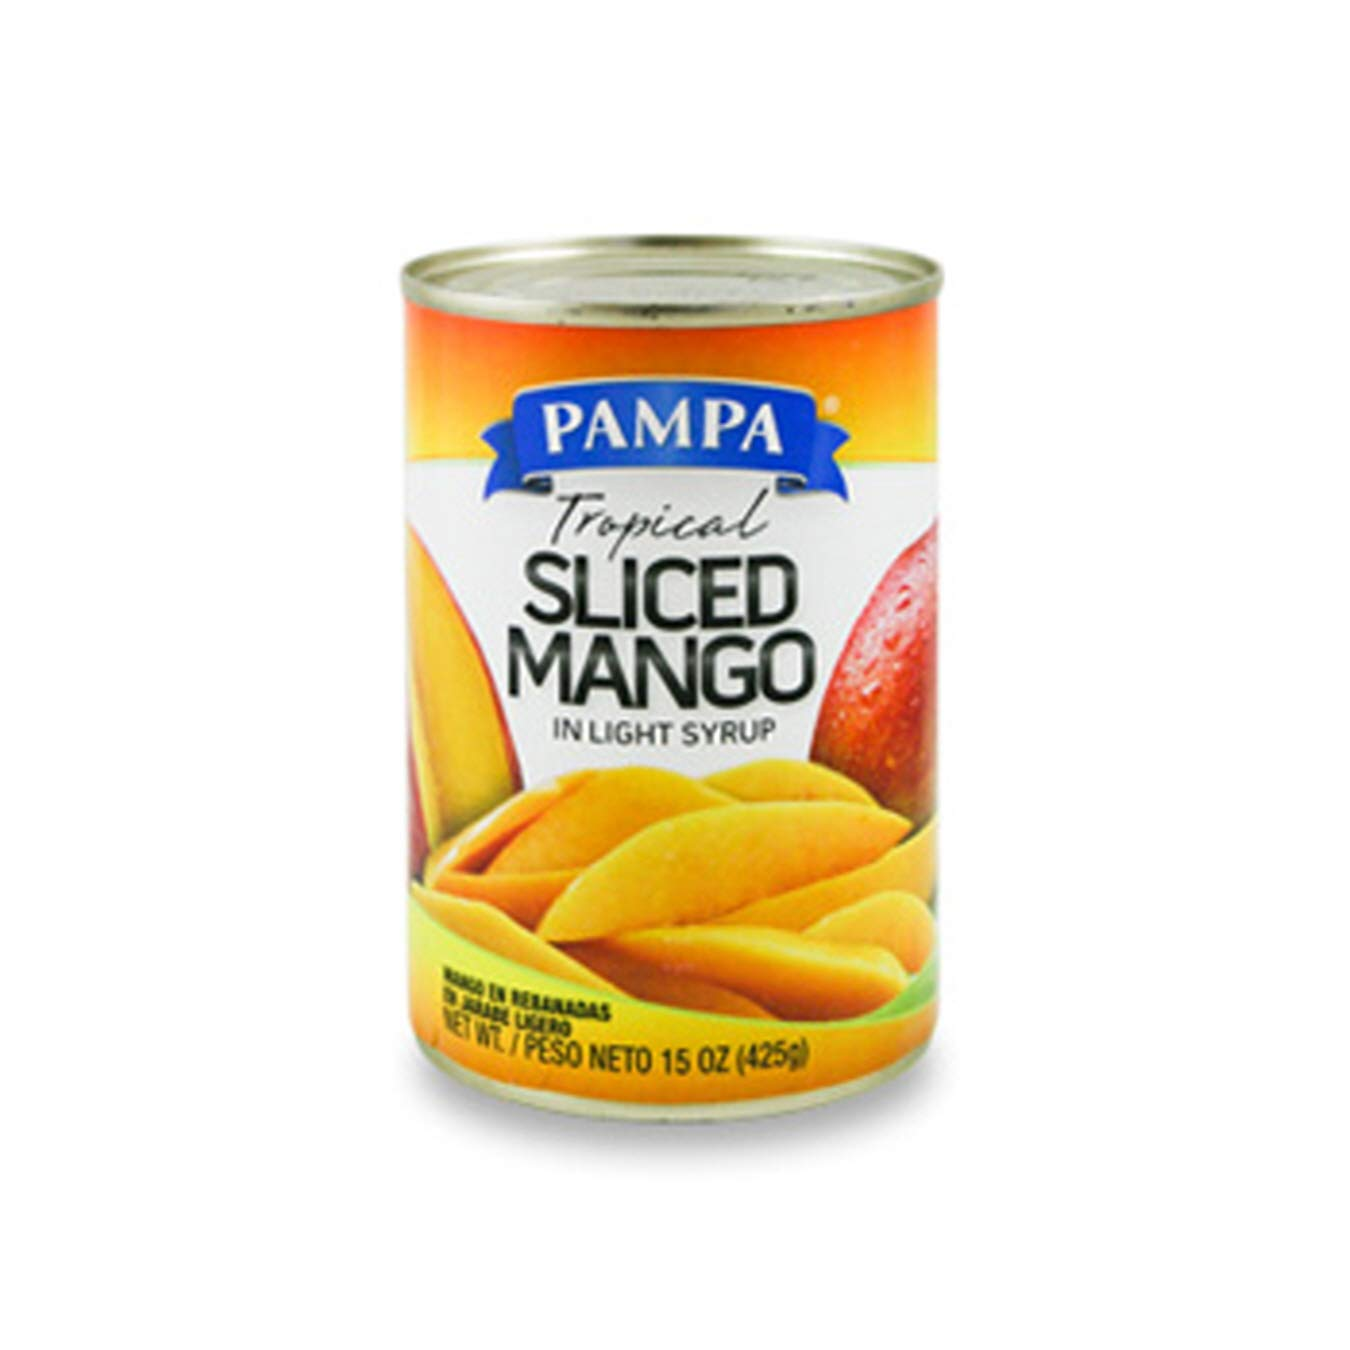 (Pack of 12) Pampa Mango Sliced, Mango in Lite Syrup, 15oz